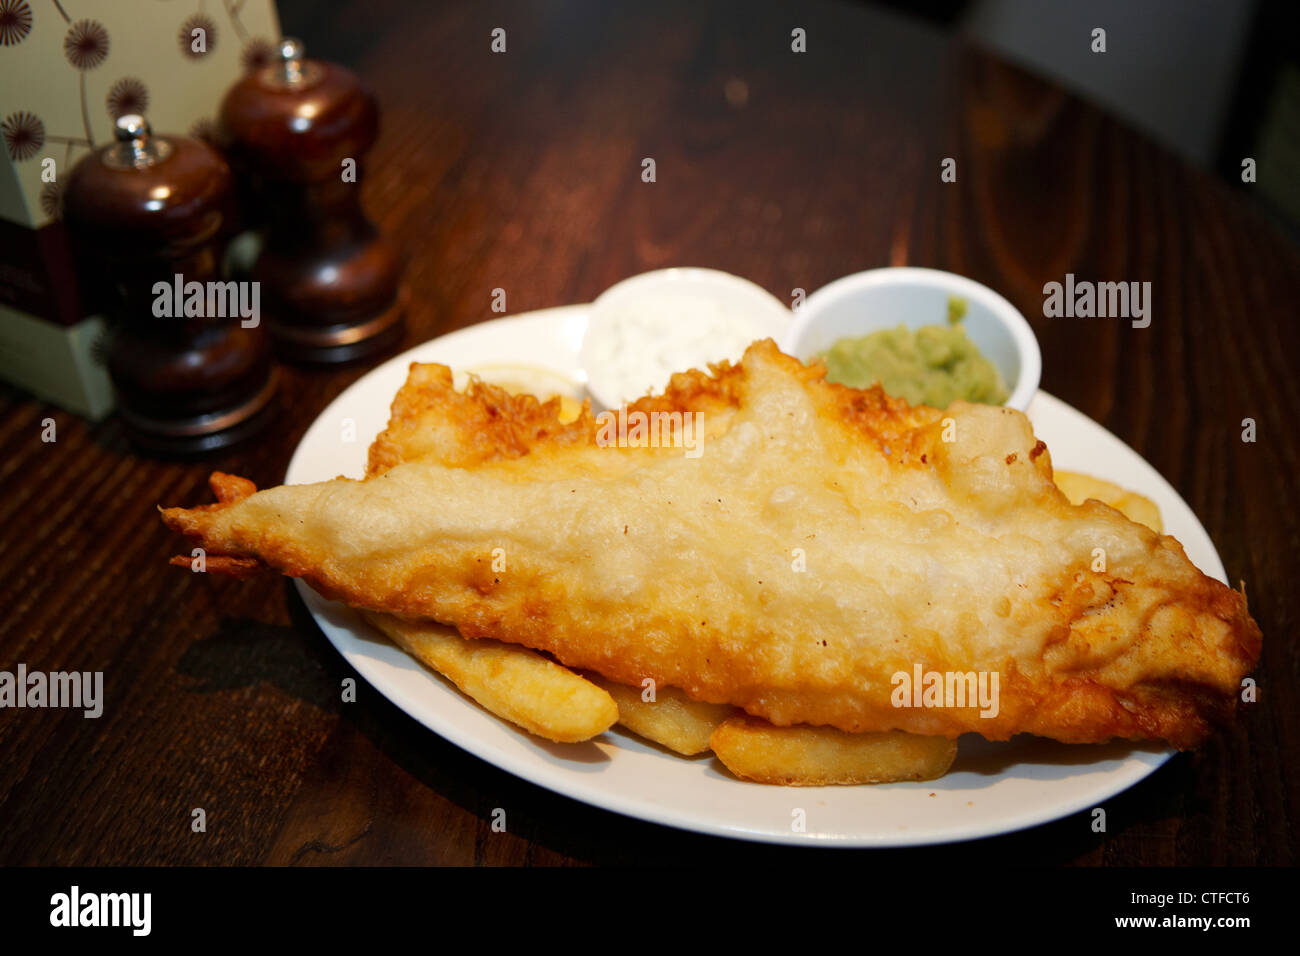 Fish and chips with mushy peas - Stock Image